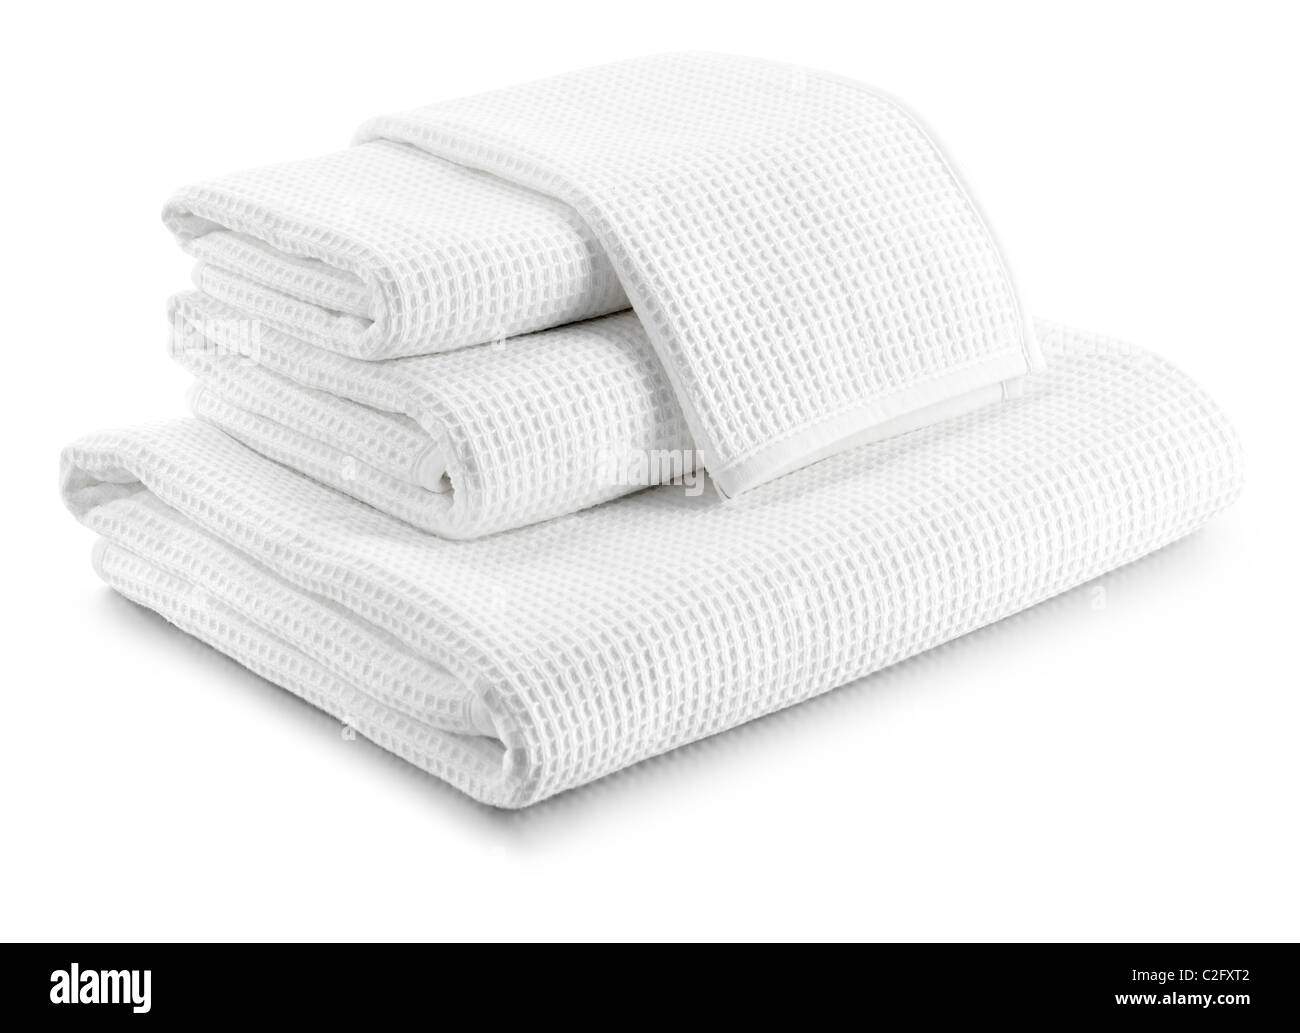 stack of white waffle towels - Stock Image